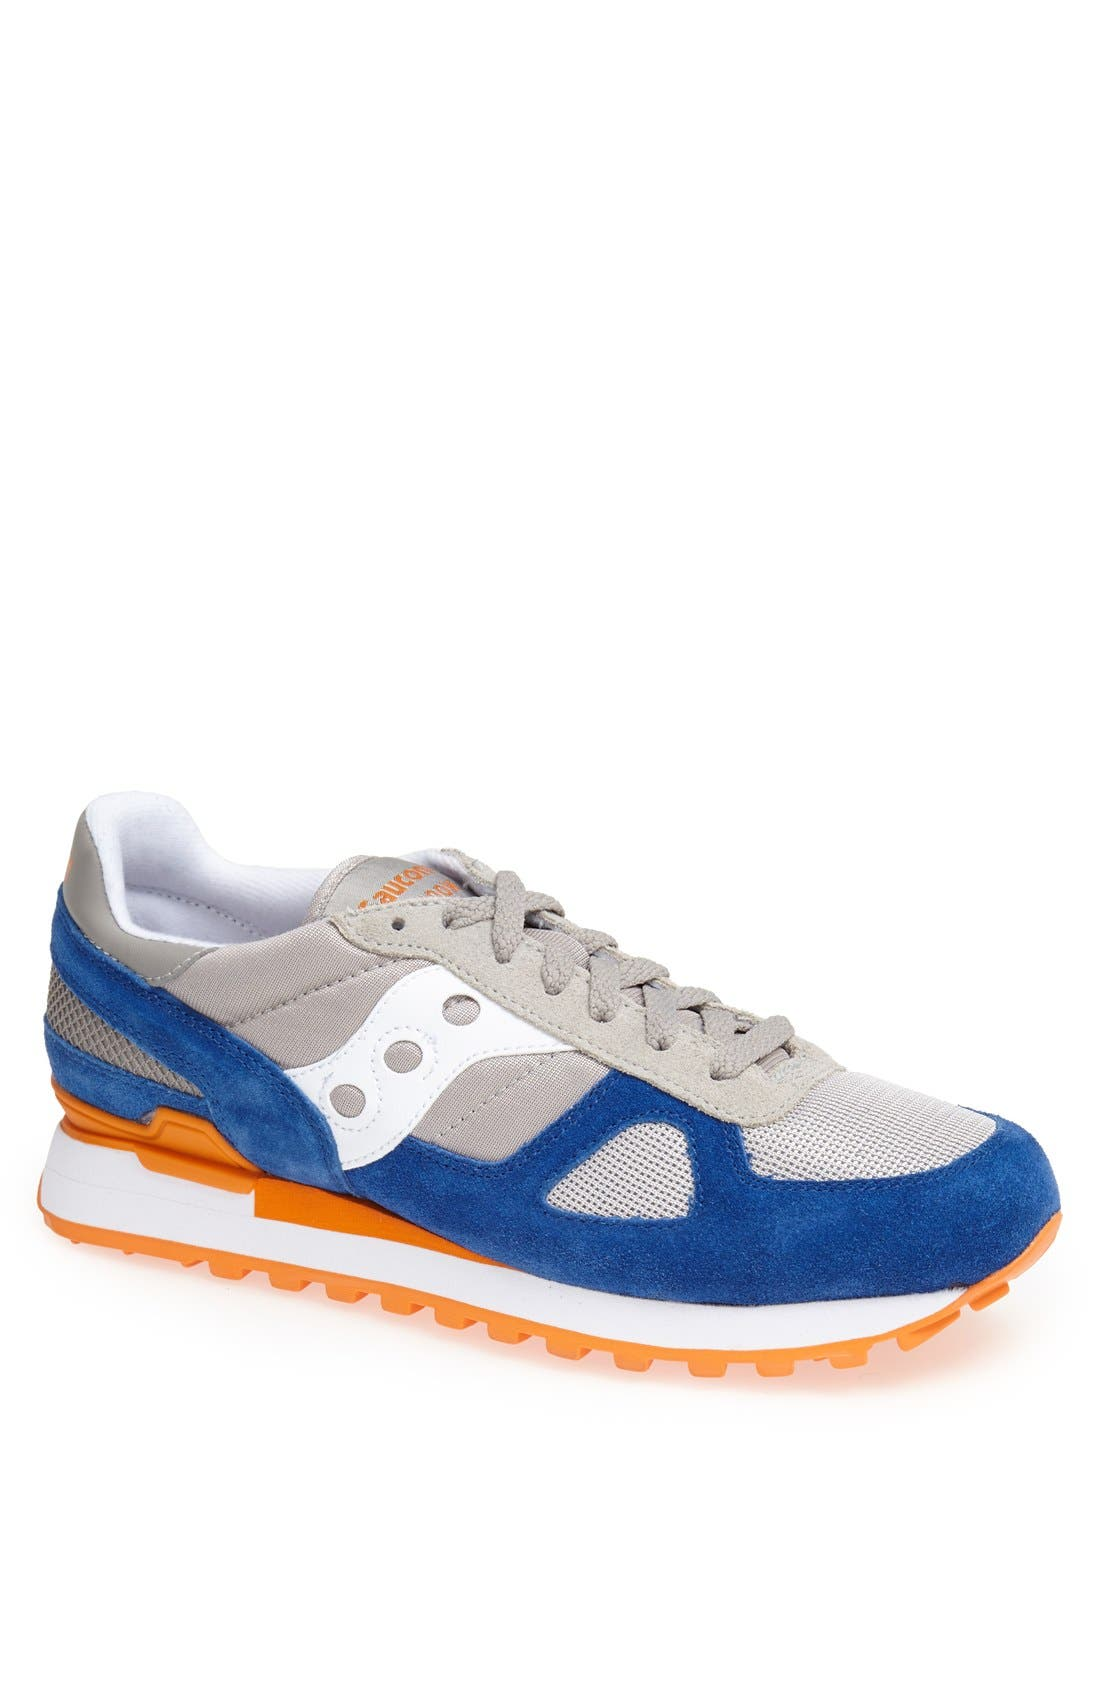 Alternate Image 1 Selected - Saucony 'Shadow Original' Sneaker (Men)